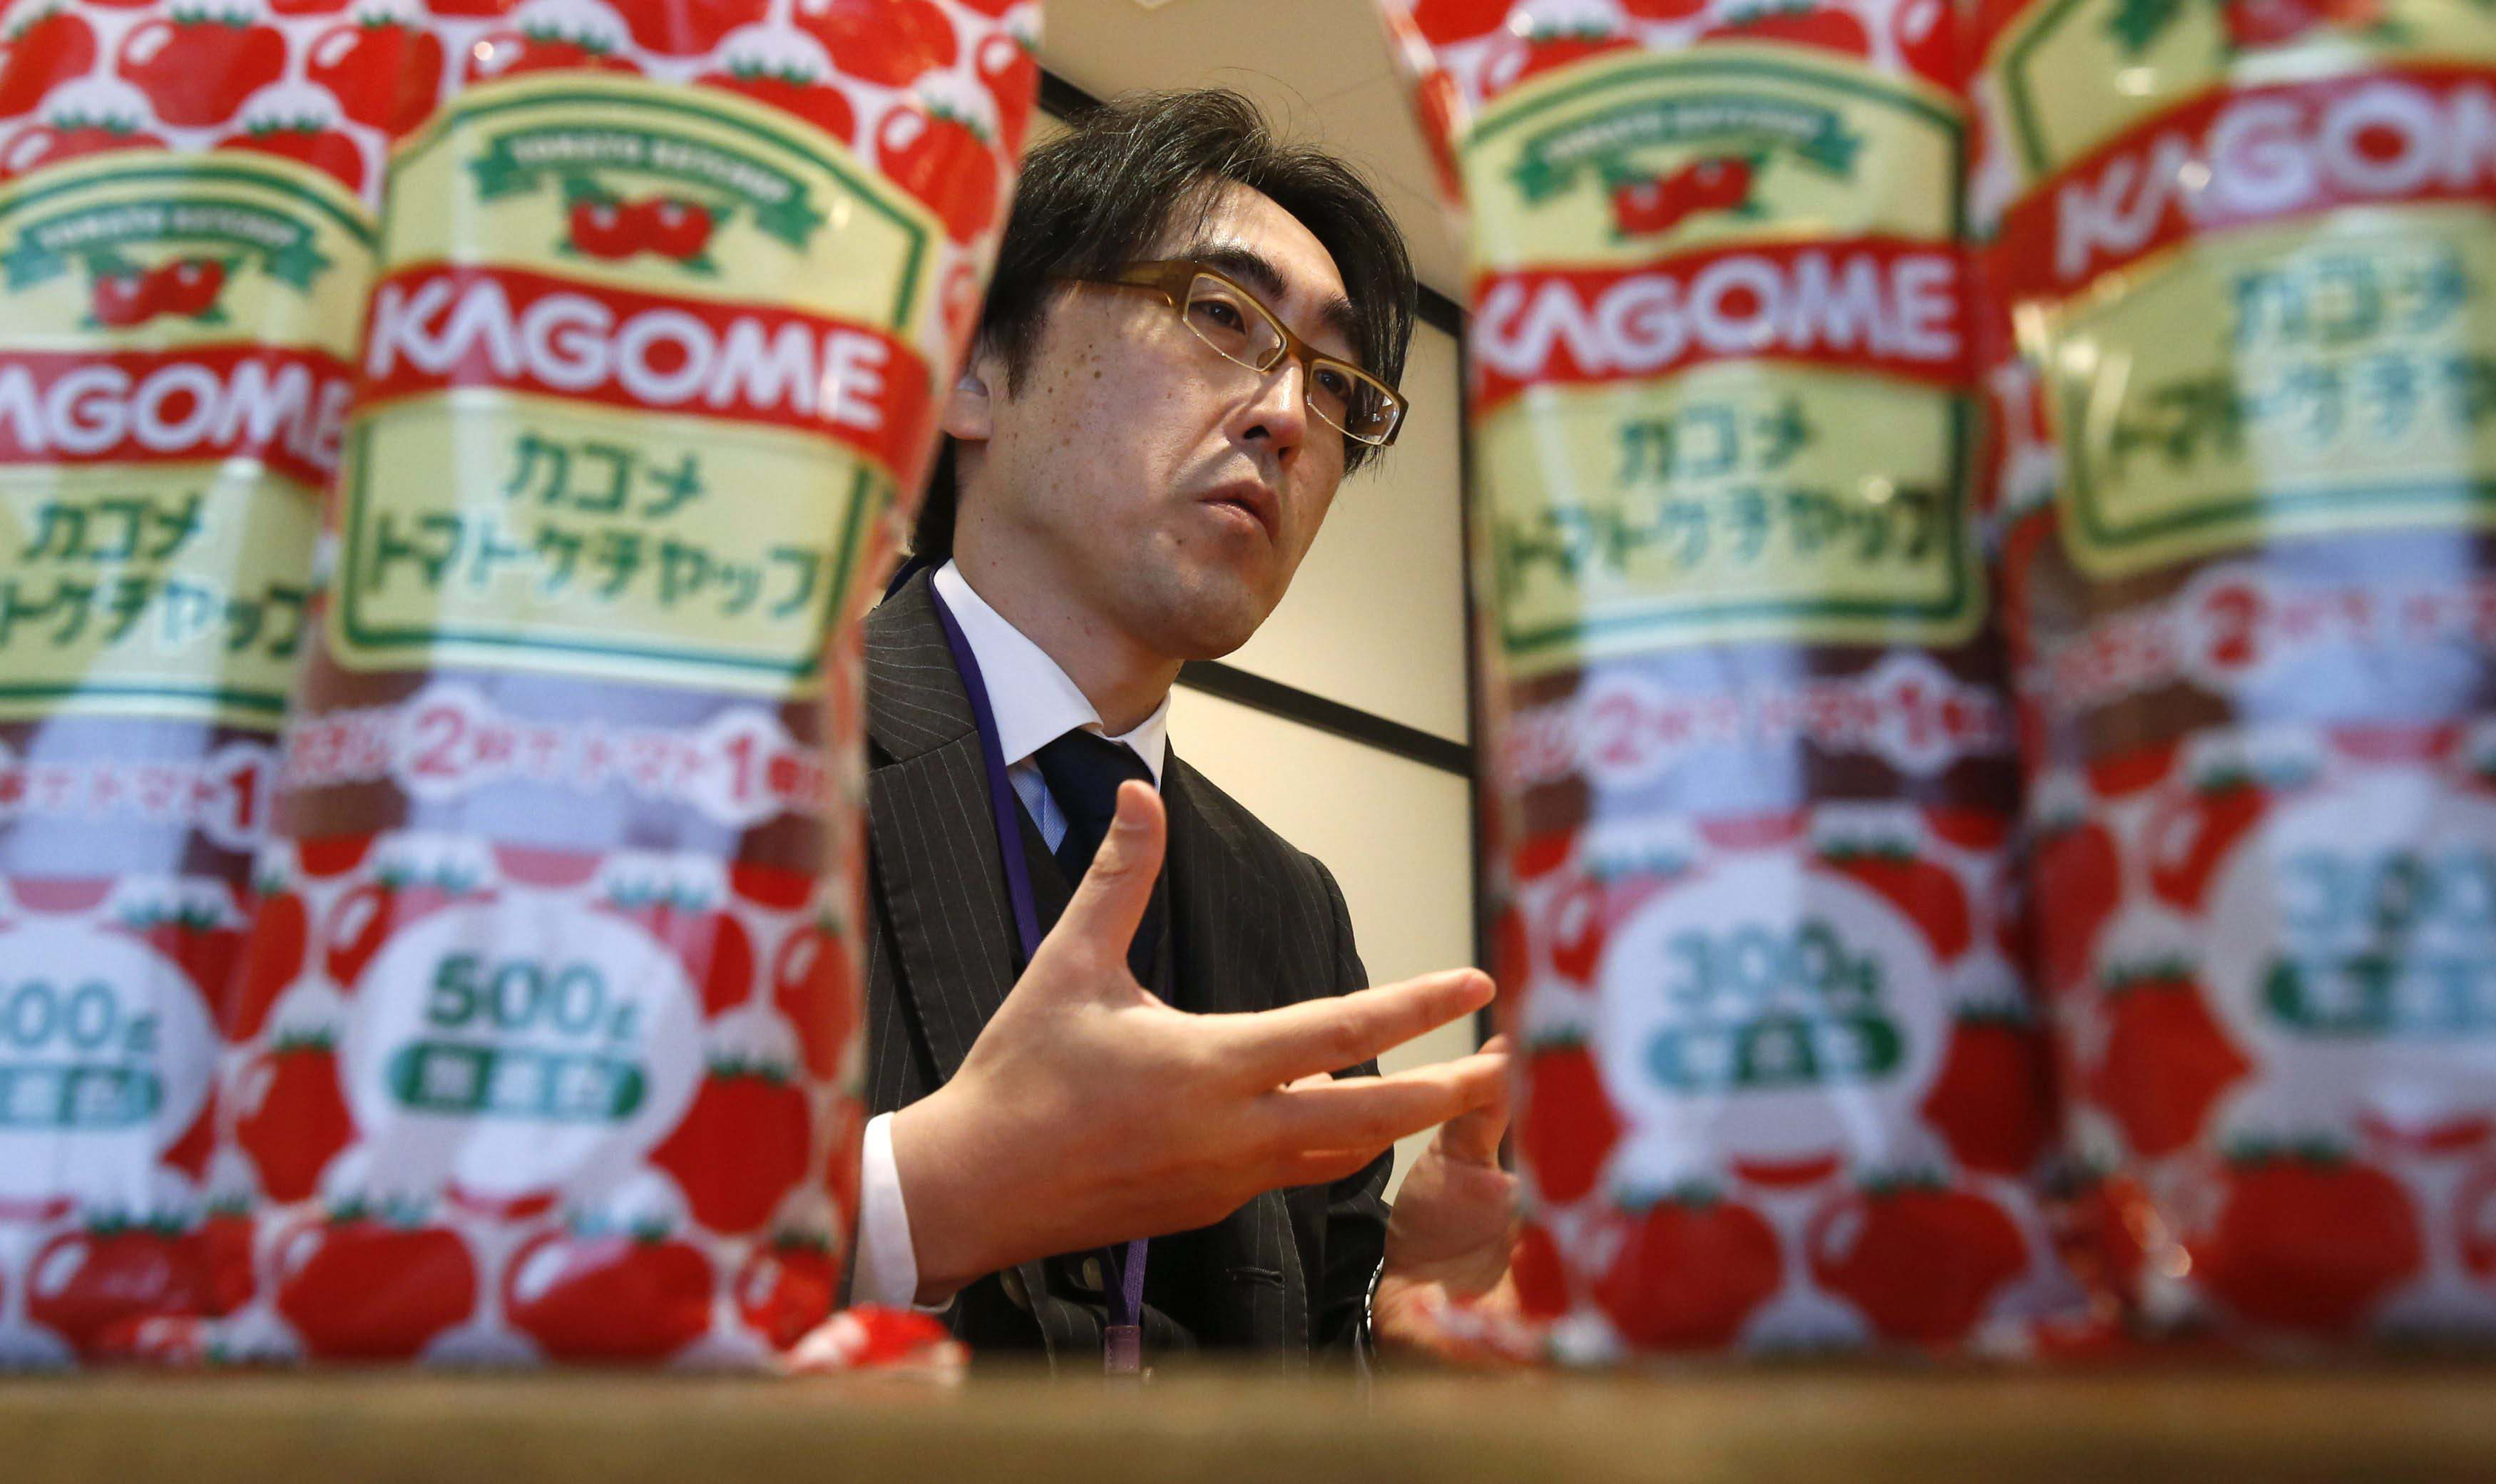 Fumitaka Ono, a manager in Kagome's product development department, speaks to a reporter at the firm's headquarters last month.   REUTERS